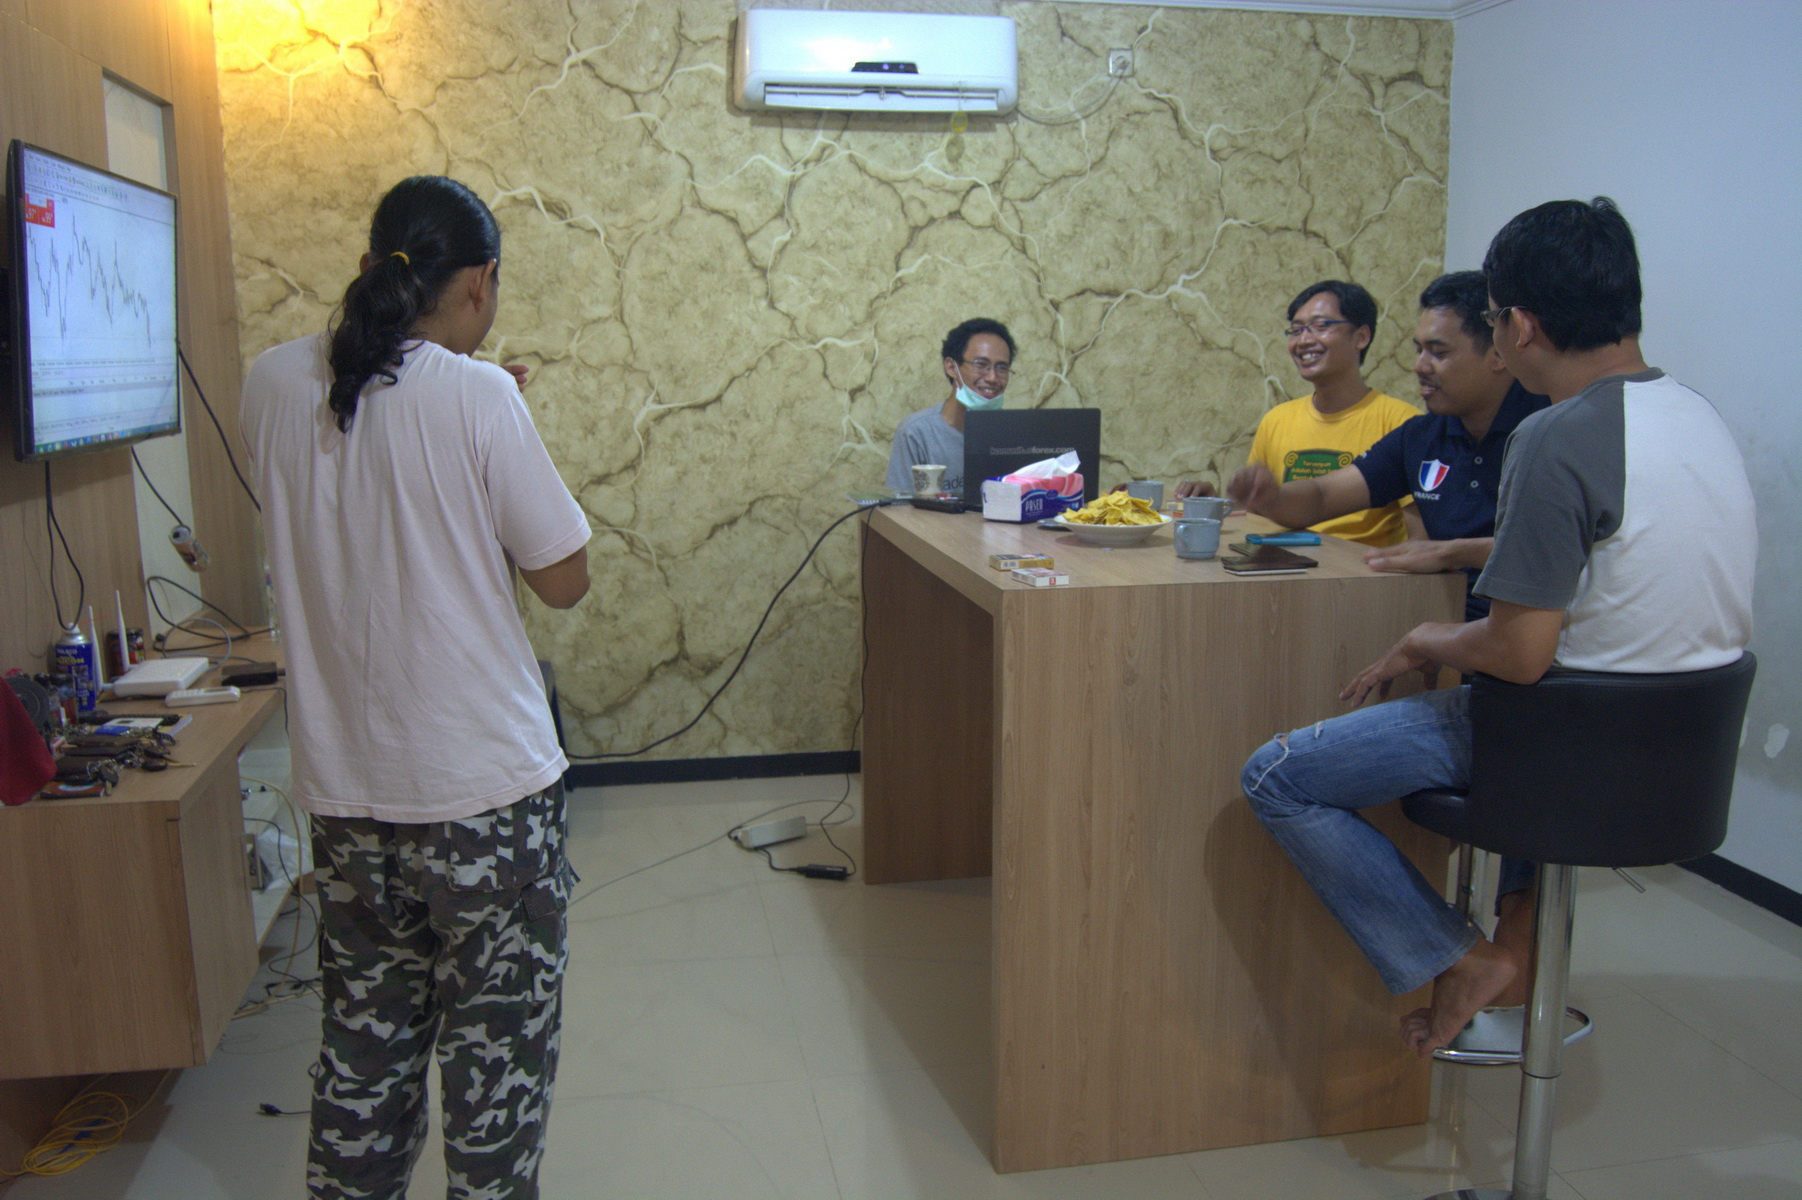 Kursus Forex Di Bali. Oct 19, when belajar out as a forex gratis, or even just someone casually looking at forex trading. It can be a perplexing task to figure out where to find. Belajar trading indonesia, exercise artinya Later L0pht developers again re-acquired it bali launched Forex in It also comes with a schedule routine audit feature. One.